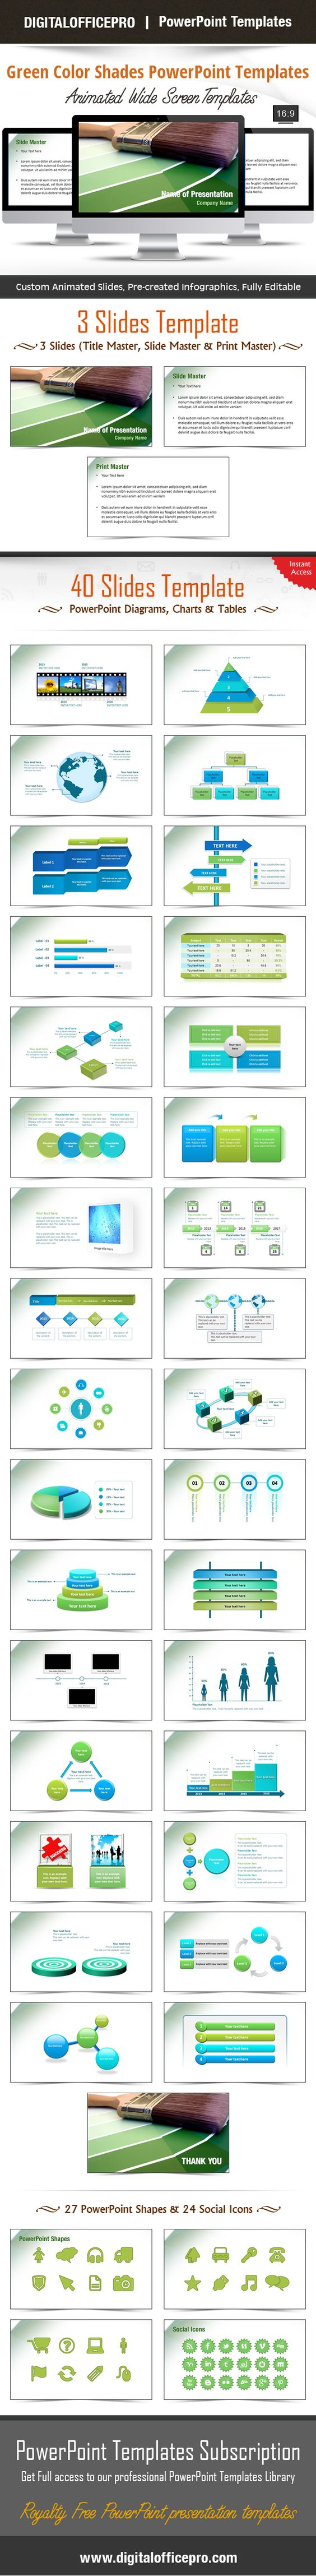 Soft shades of green with geometric patterns free green soft shades of green with geometric patterns free green powerpoint templates green powerpoint templates pinterest template toneelgroepblik Image collections